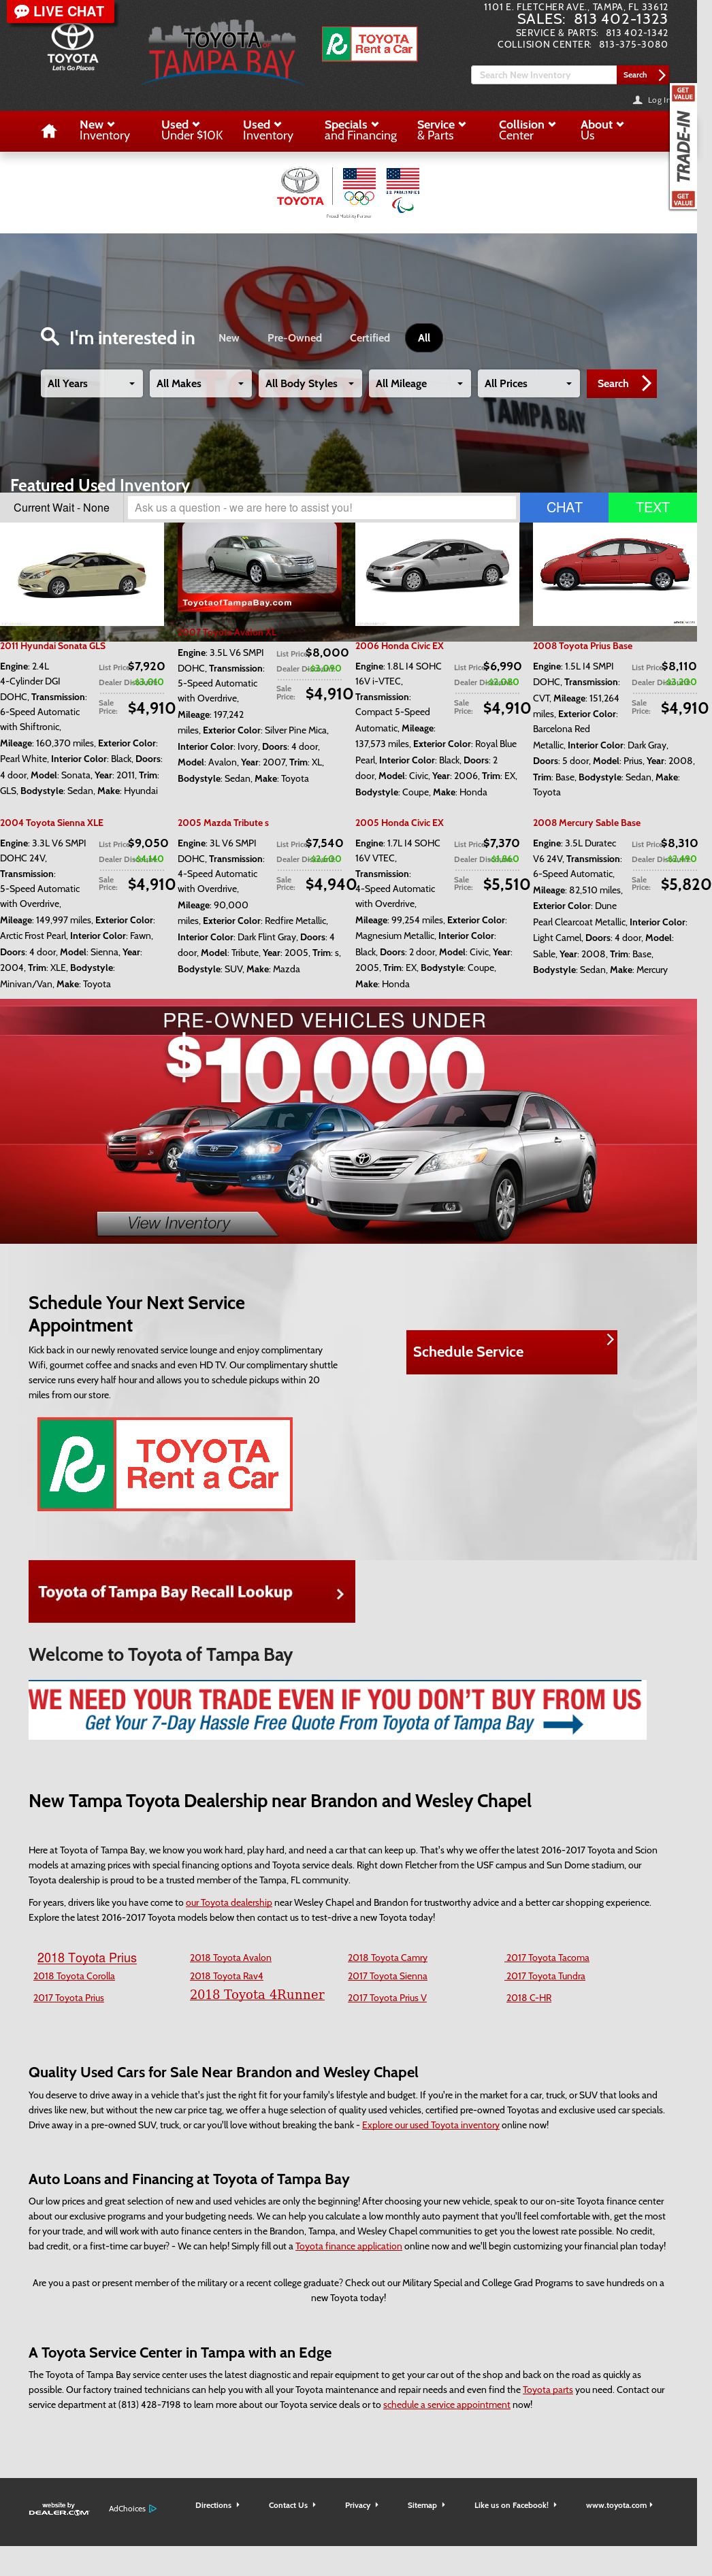 Toyota Of Tampa Bay Website History